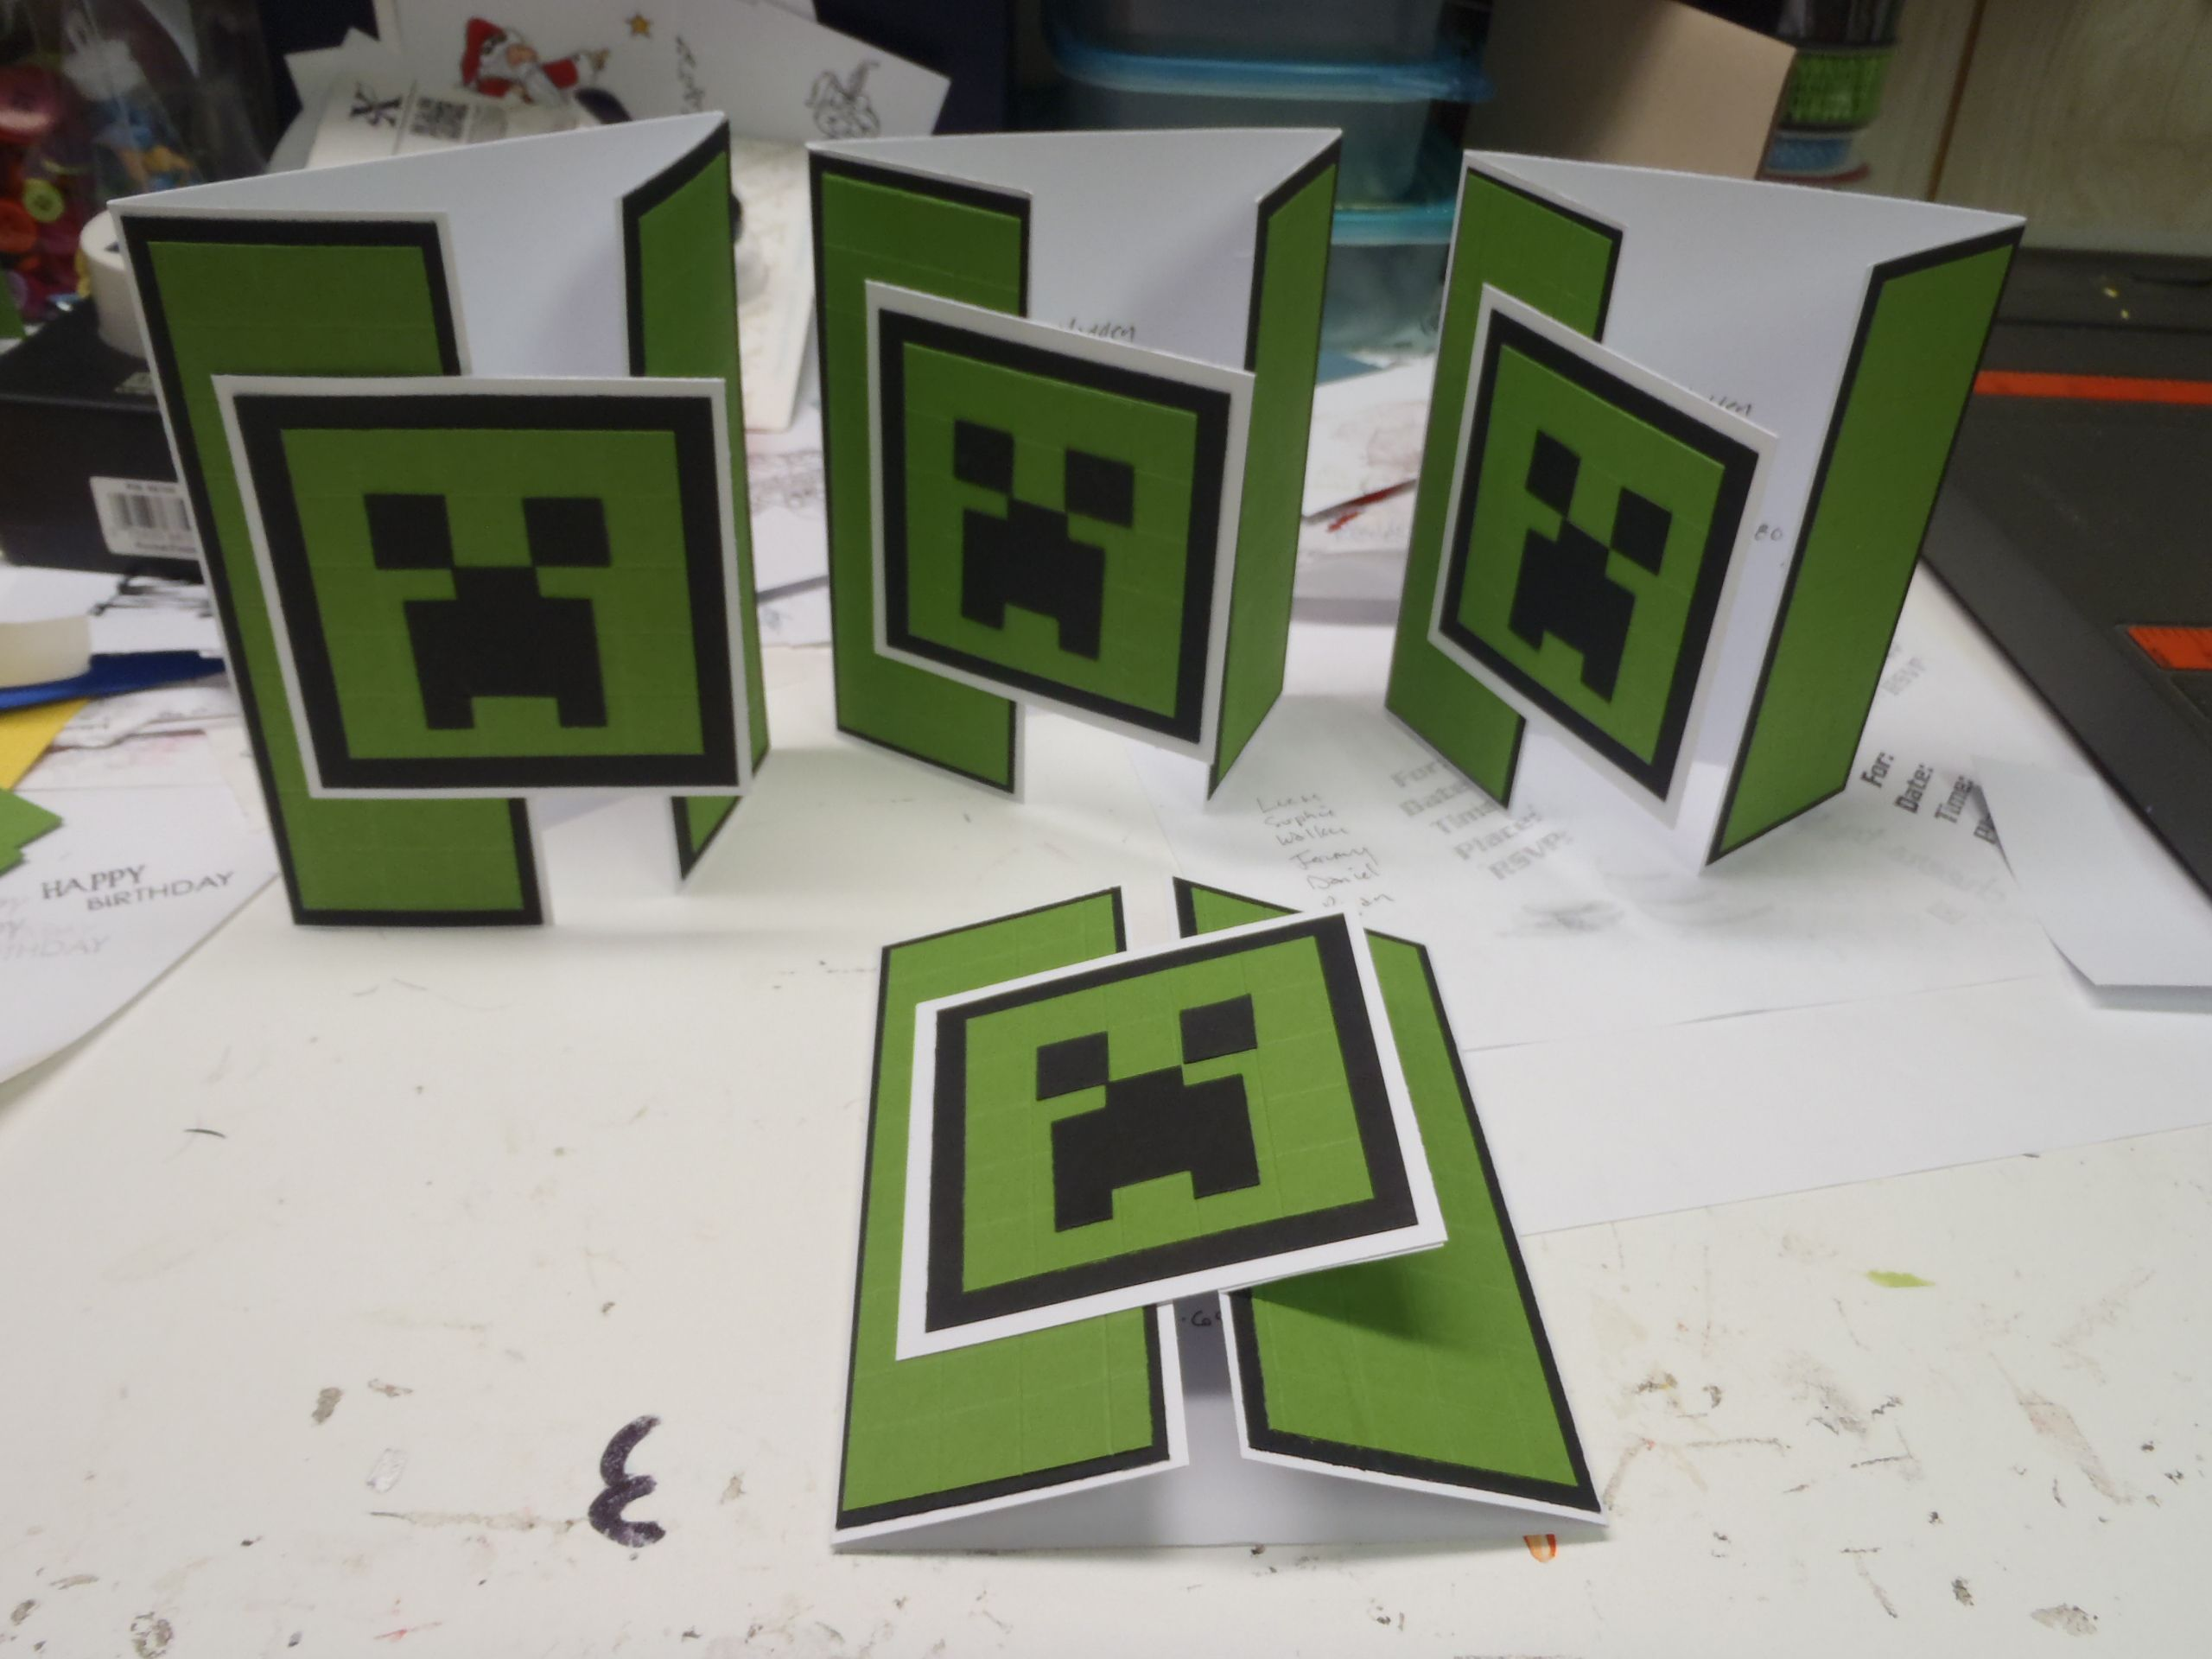 Minecraft invitations pinteres minecraft invitations more solutioingenieria